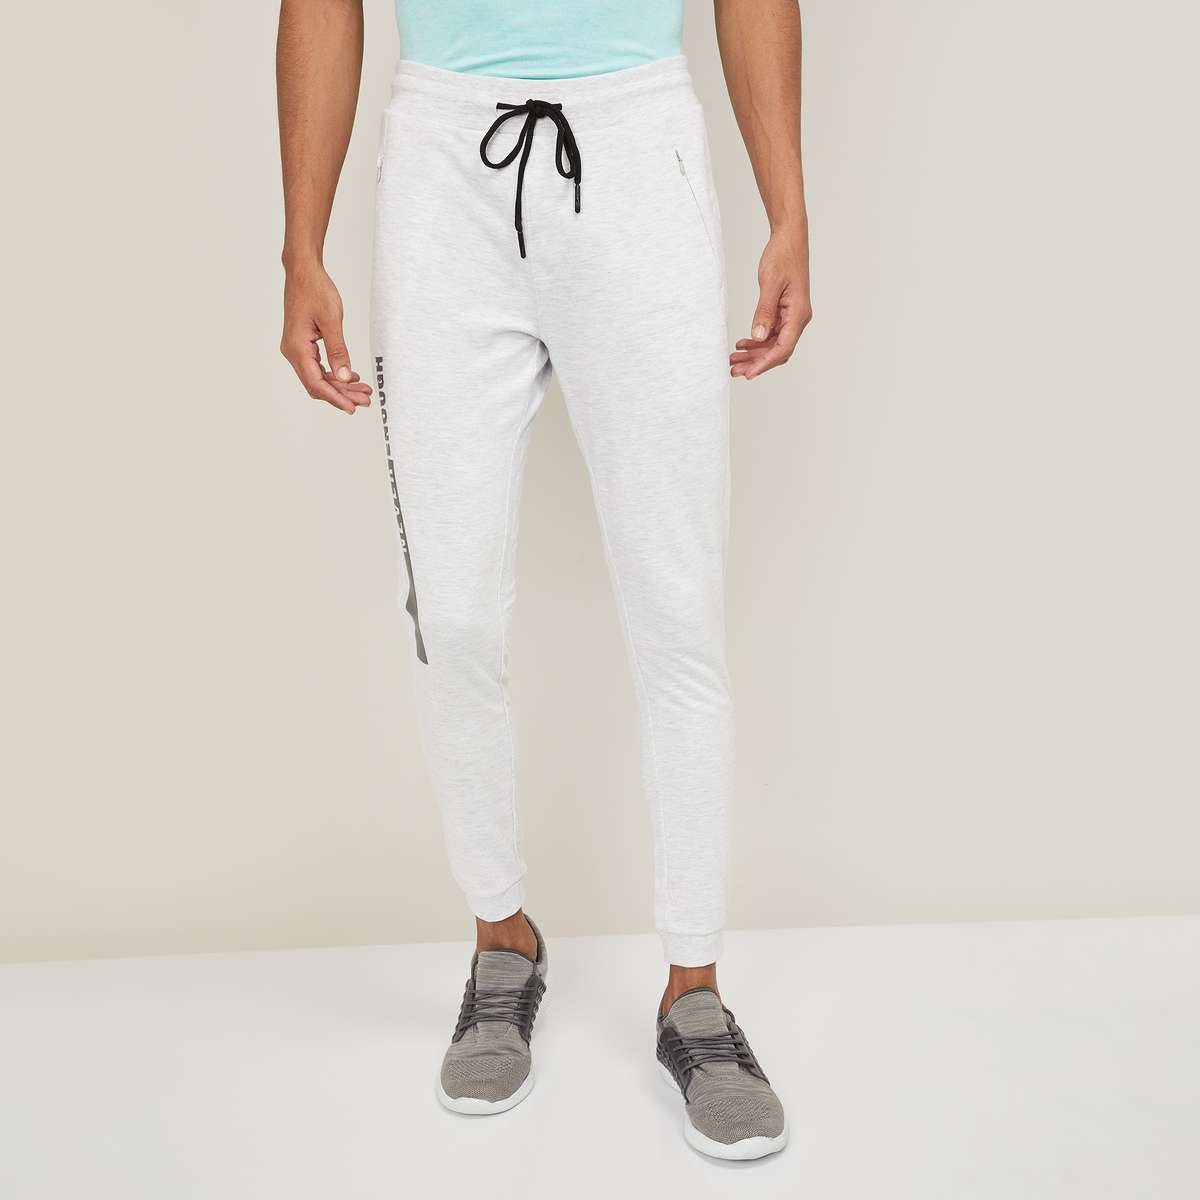 4.KAPPA Men Printed Elasticated Track Pants